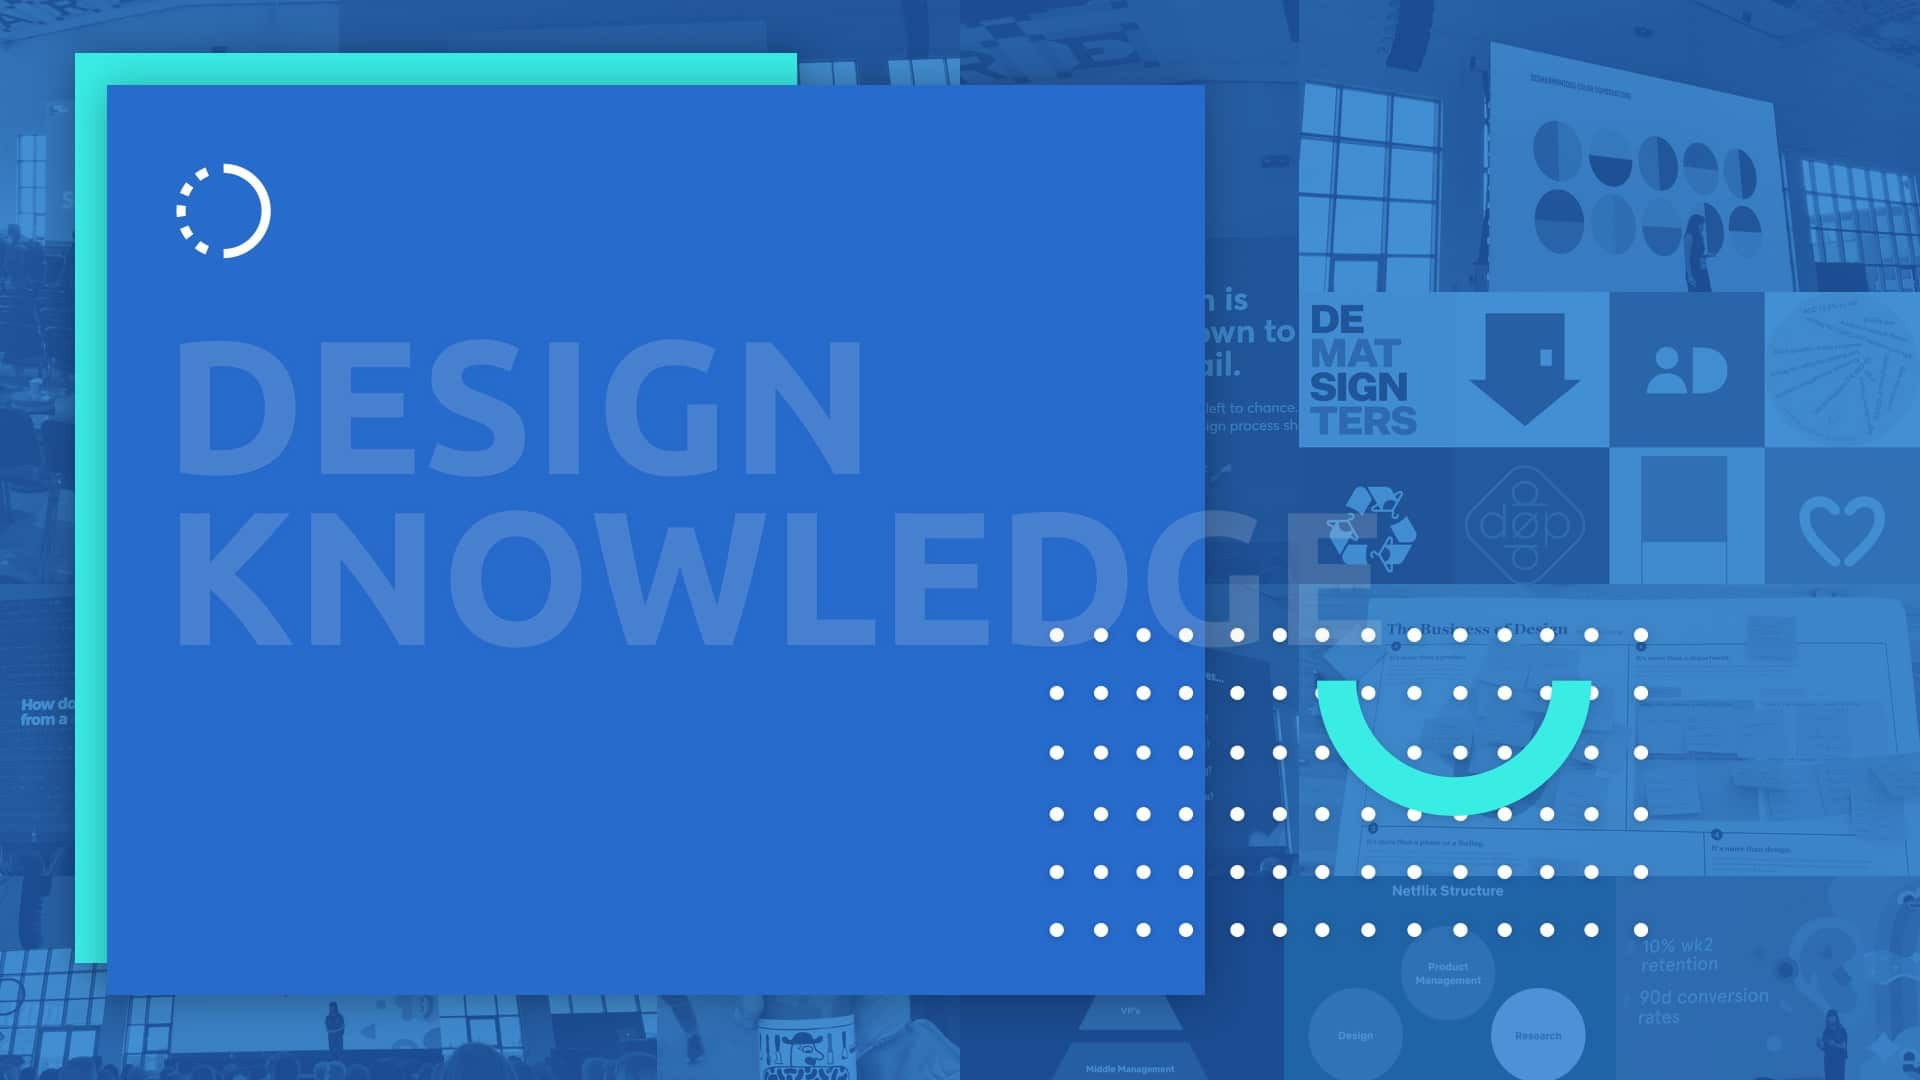 Design Knowledge - The World's Best Software Designers - Inspirations | MobiLab